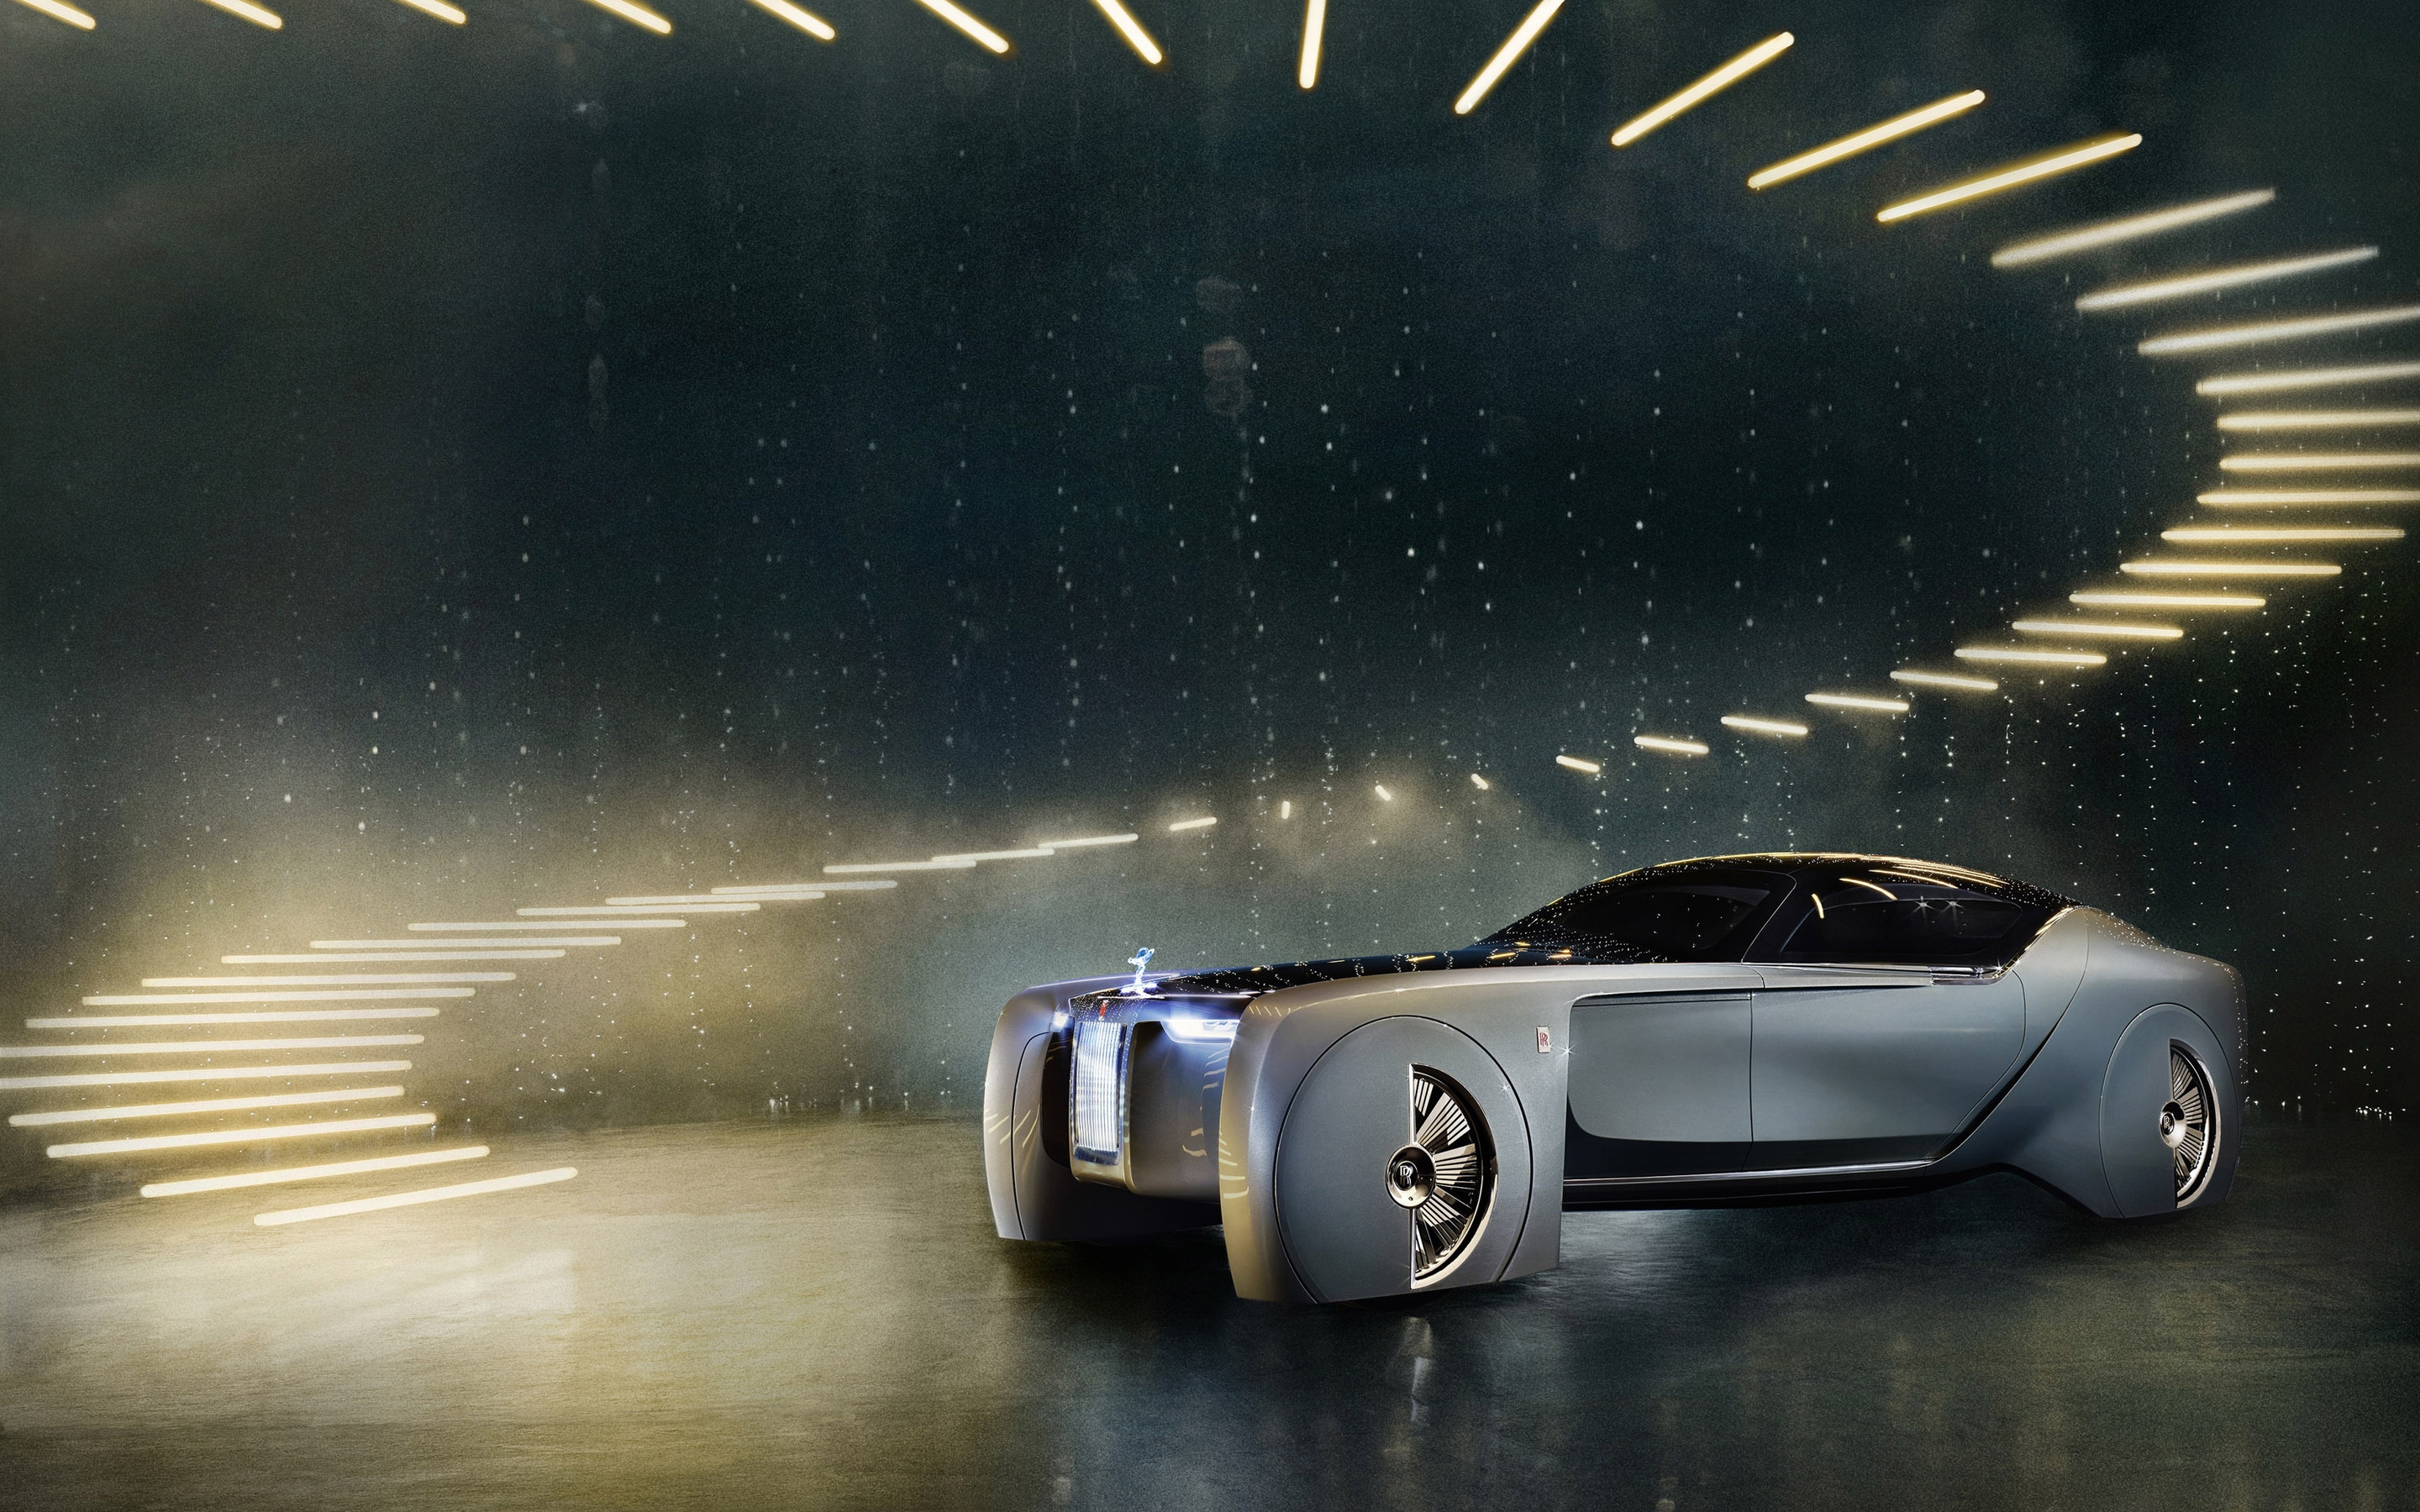 Rolls-Royce Concept Car 2016 for 2880 x 1800 Retina Display resolution